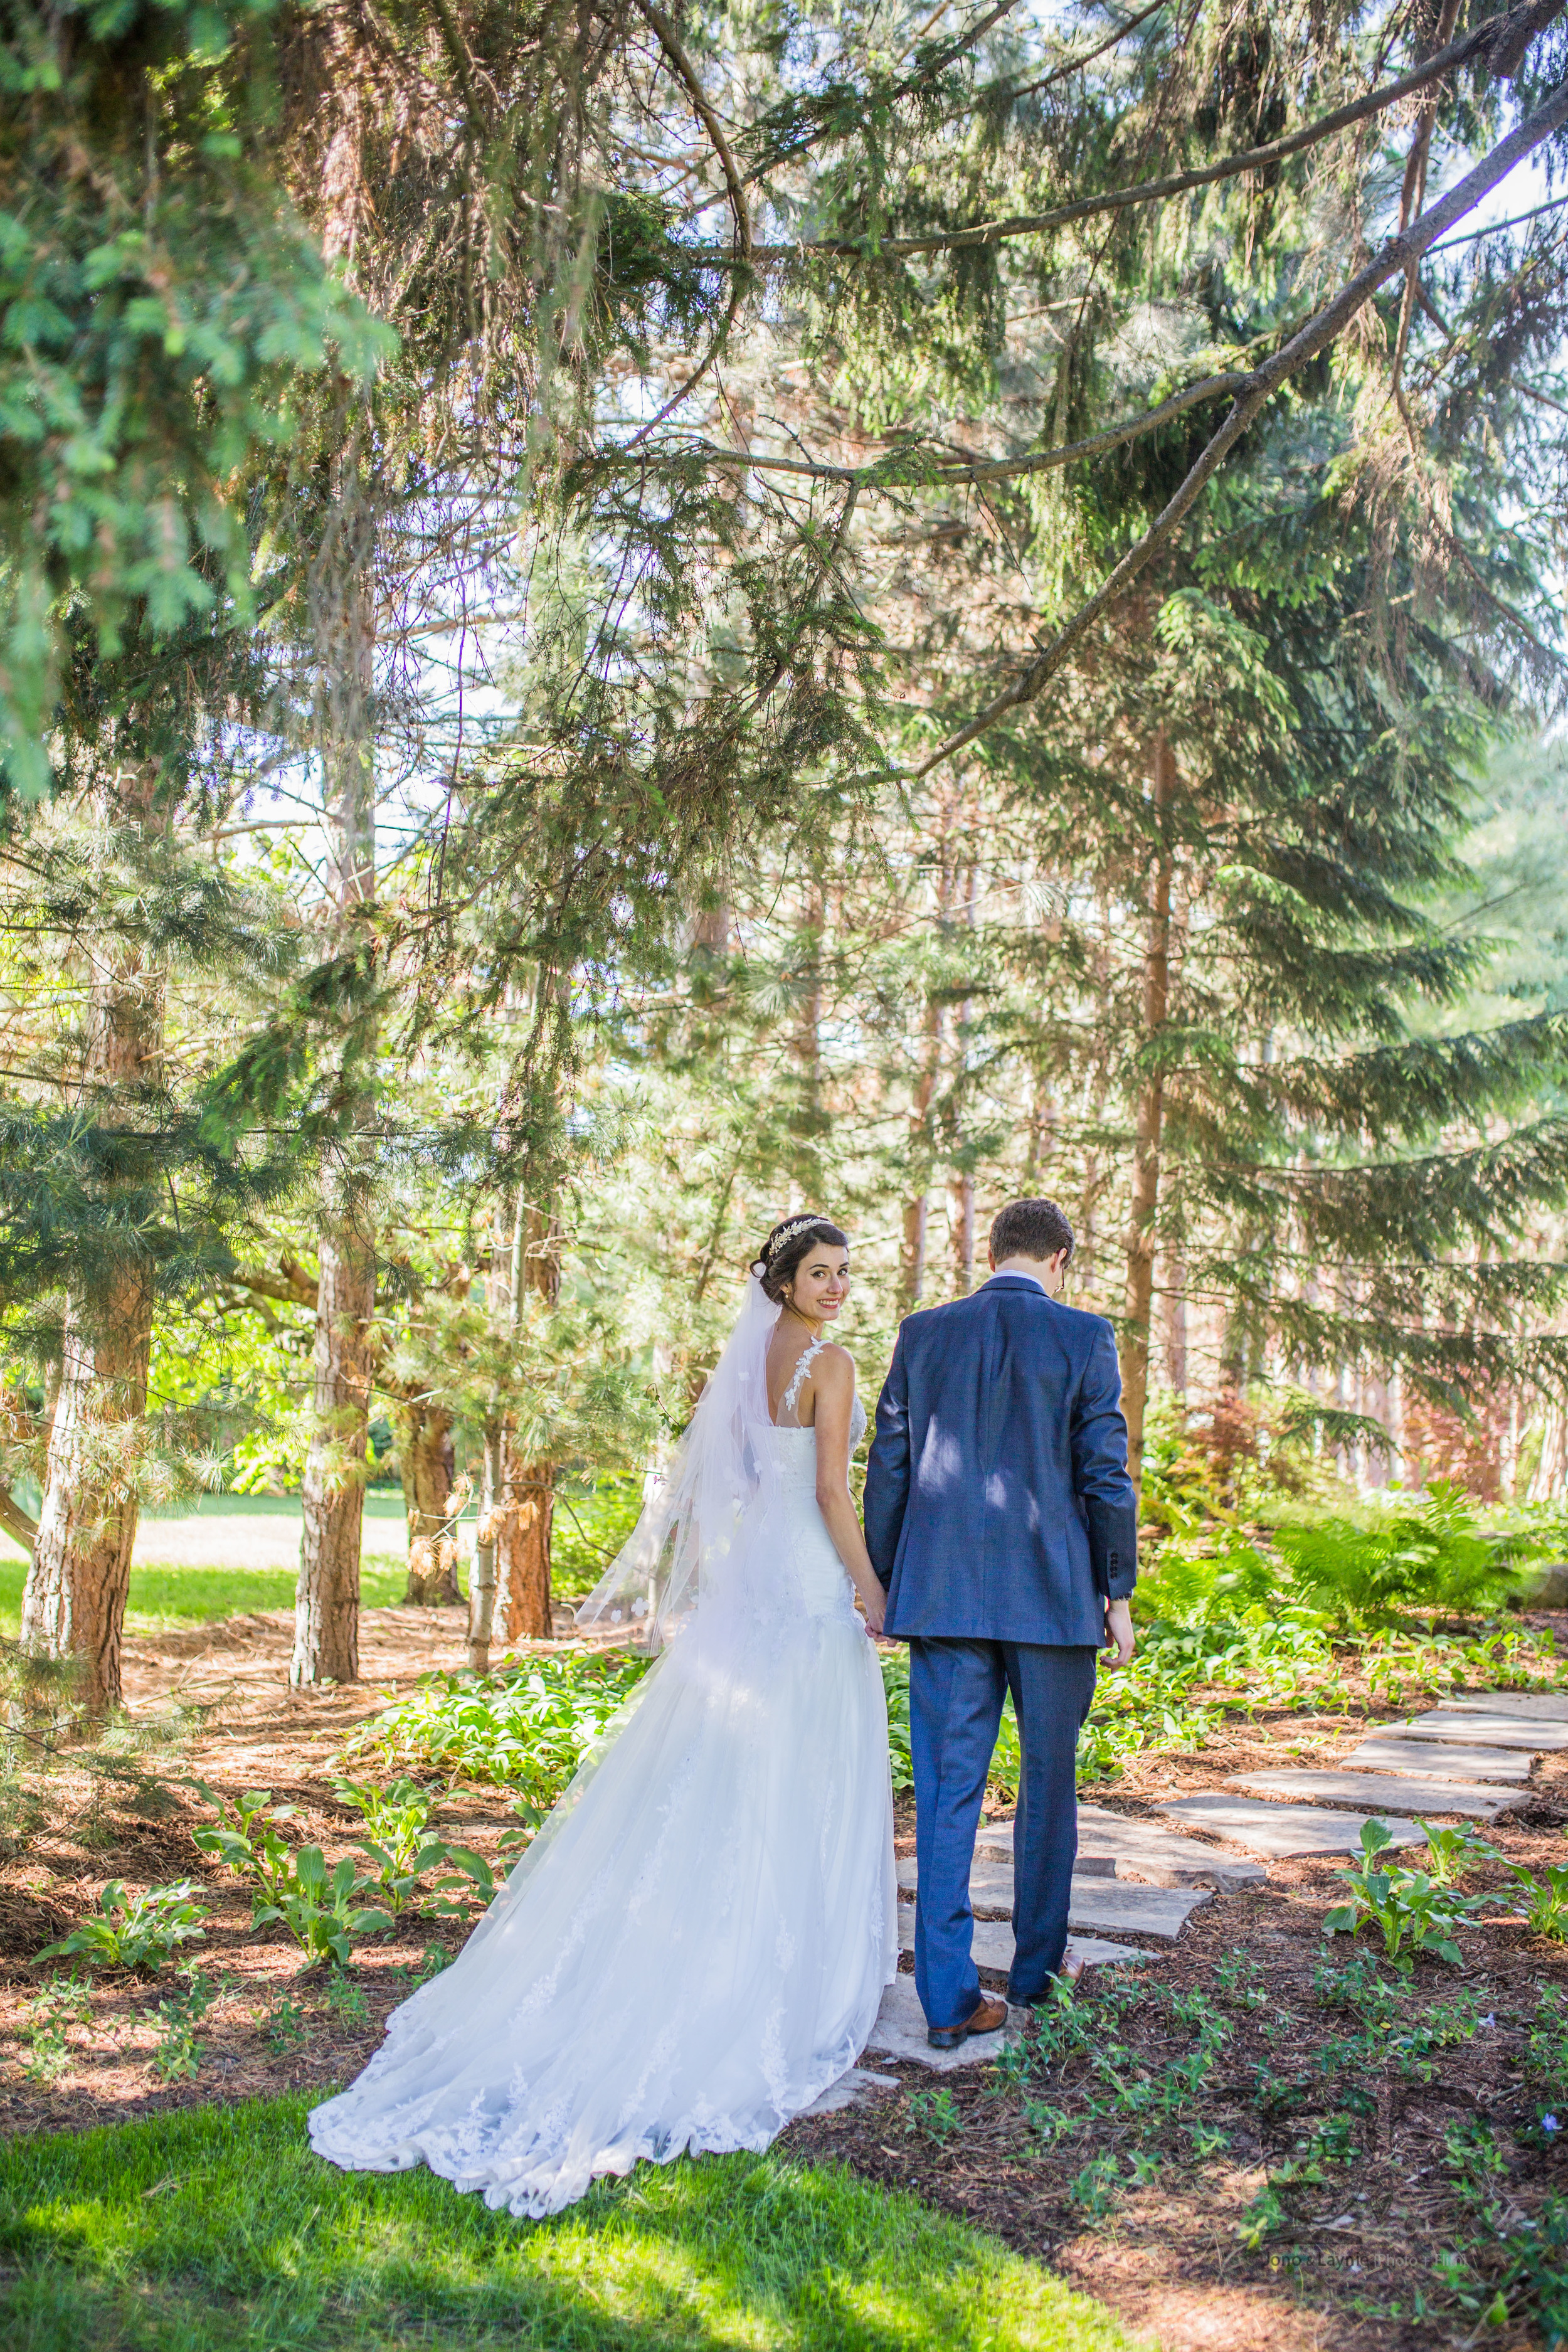 071Toronto Wedding Photographers and Videographers-Jono & Laynie Co.jpg